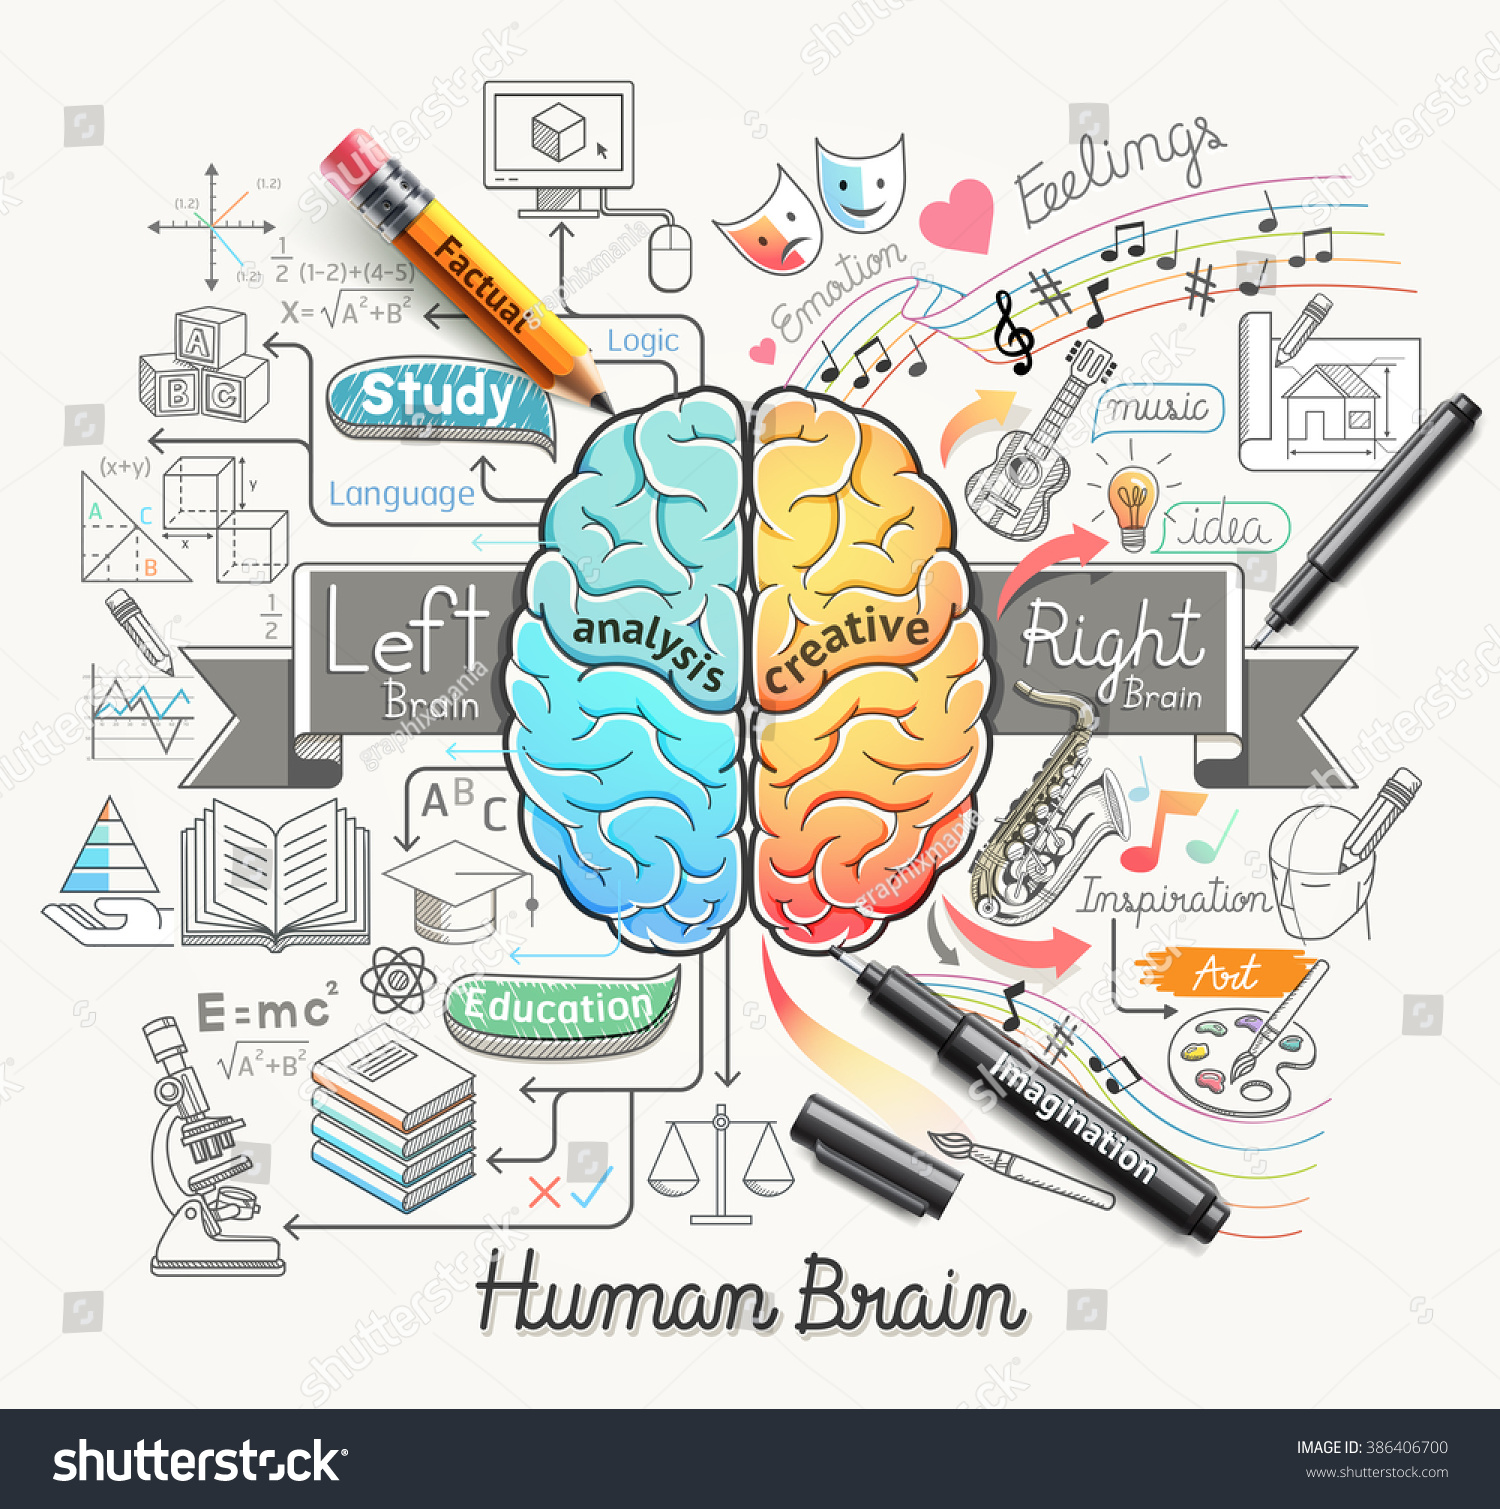 Human Brain Diagram Doodles Icons Style Stock Vector